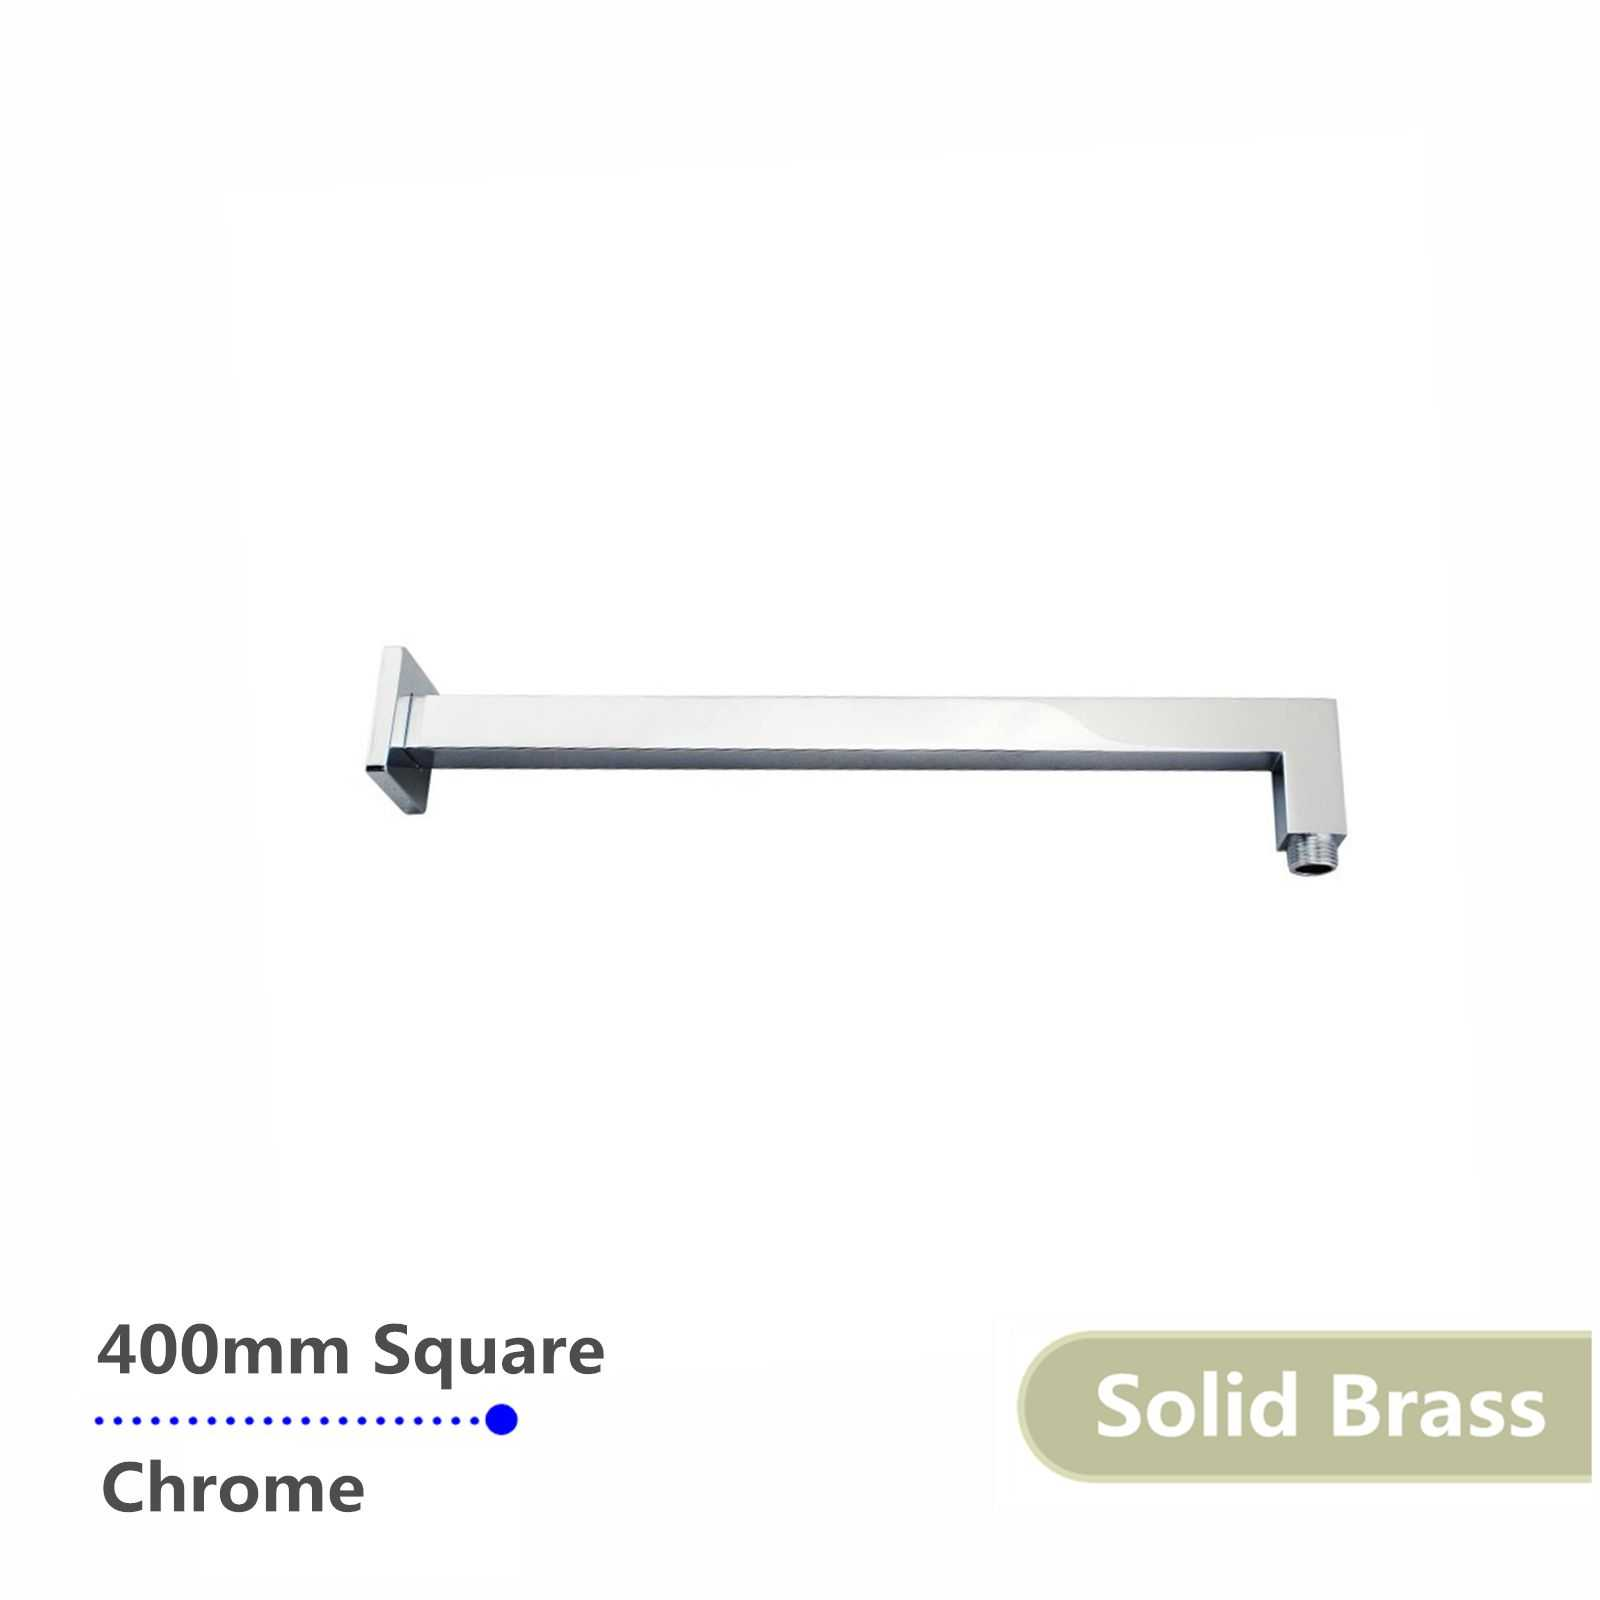 Square Chrome Brass Wall Mounted Shower Arm 400mm